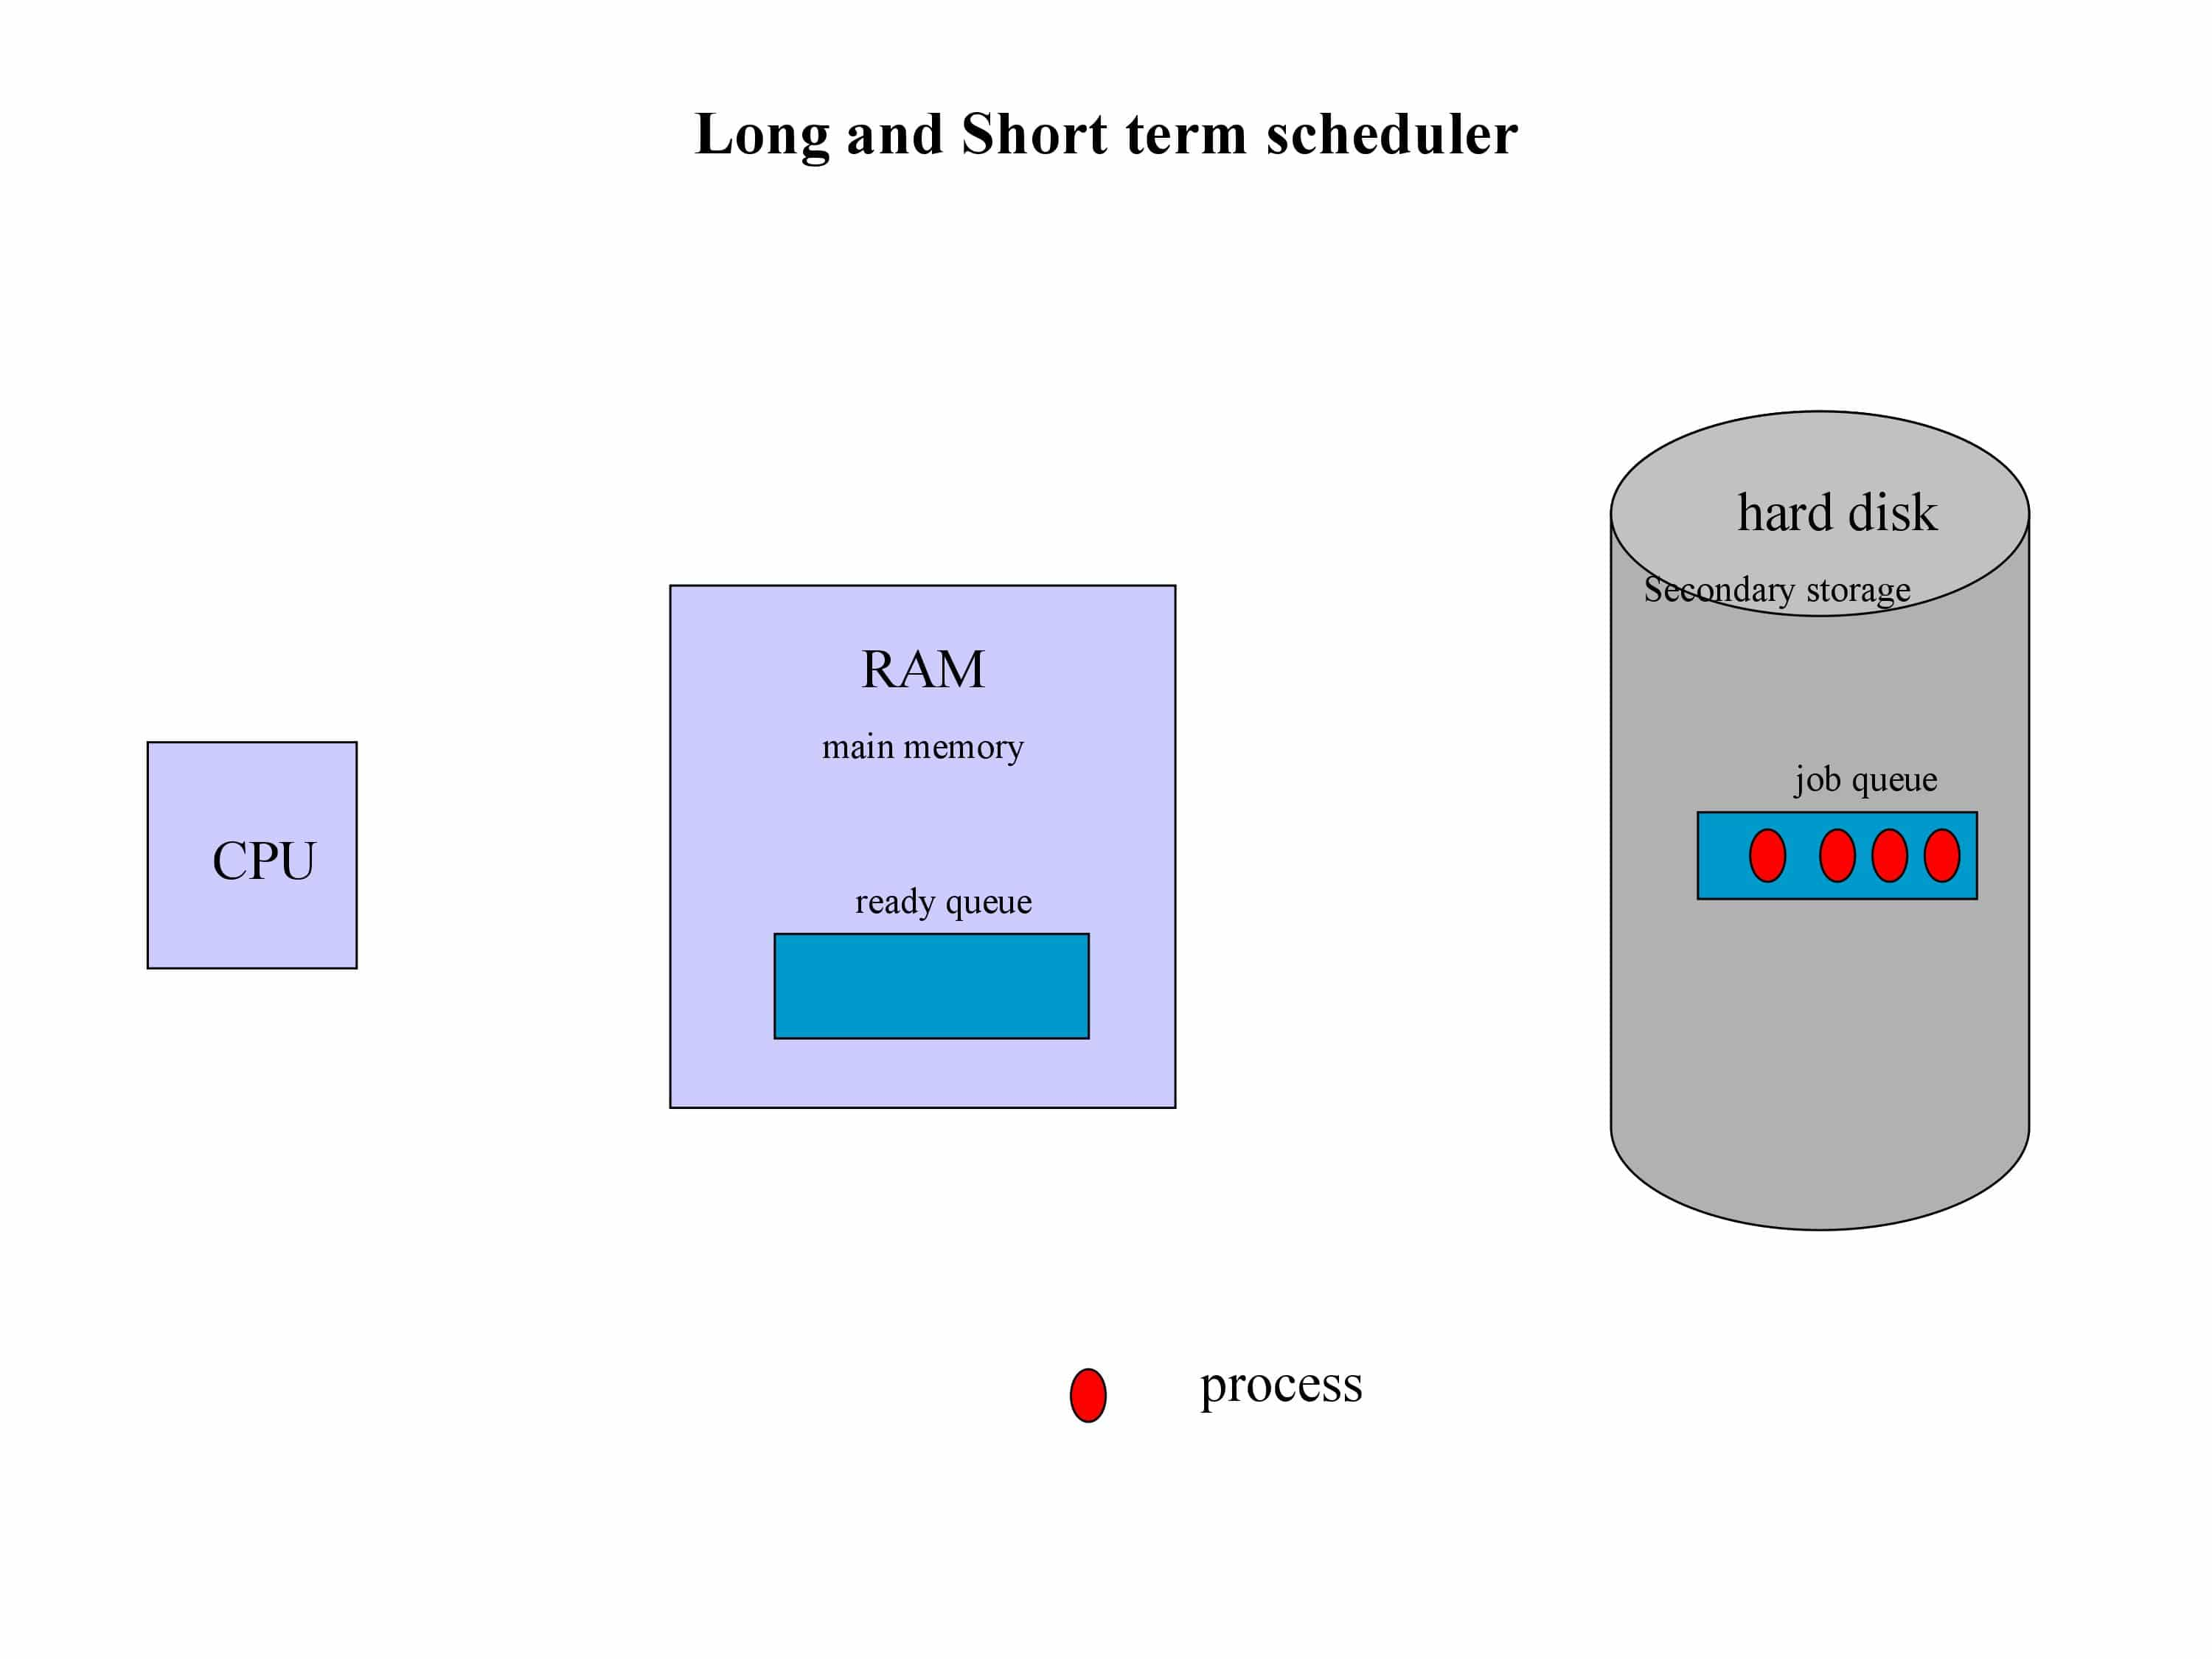 long-term and short term Scheduler